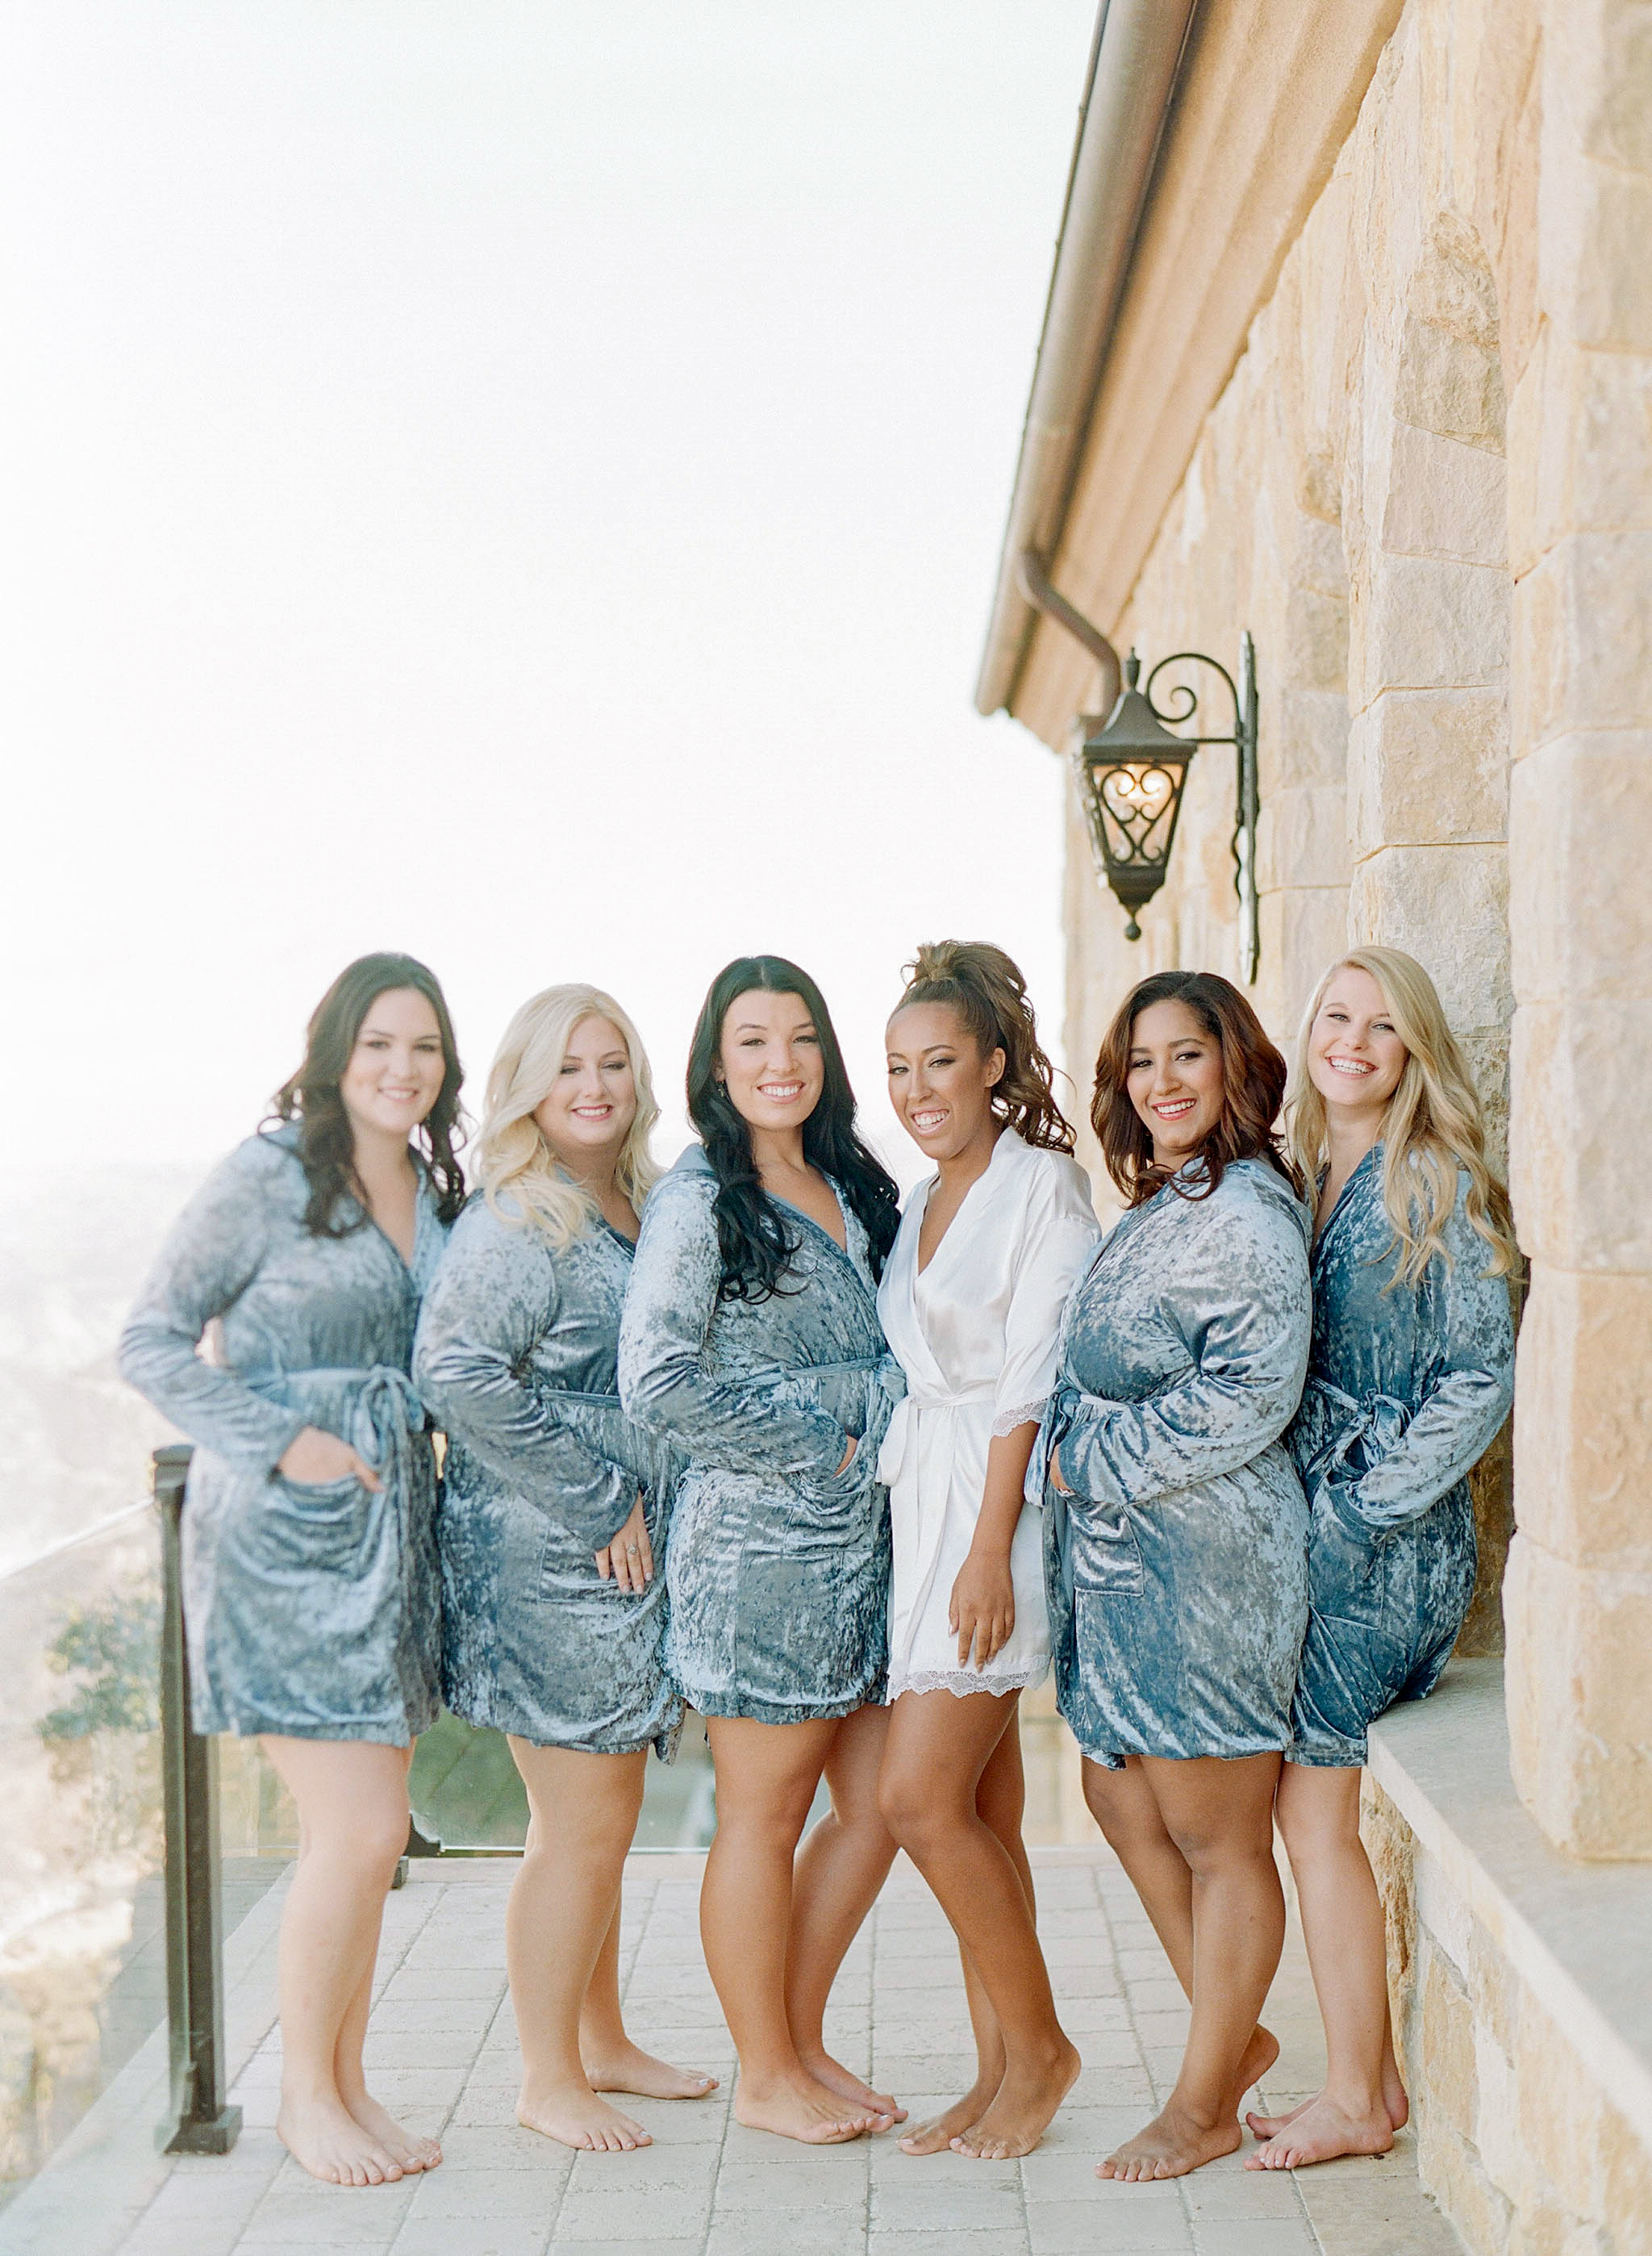 tillie dalton wedding bridesmaids robes